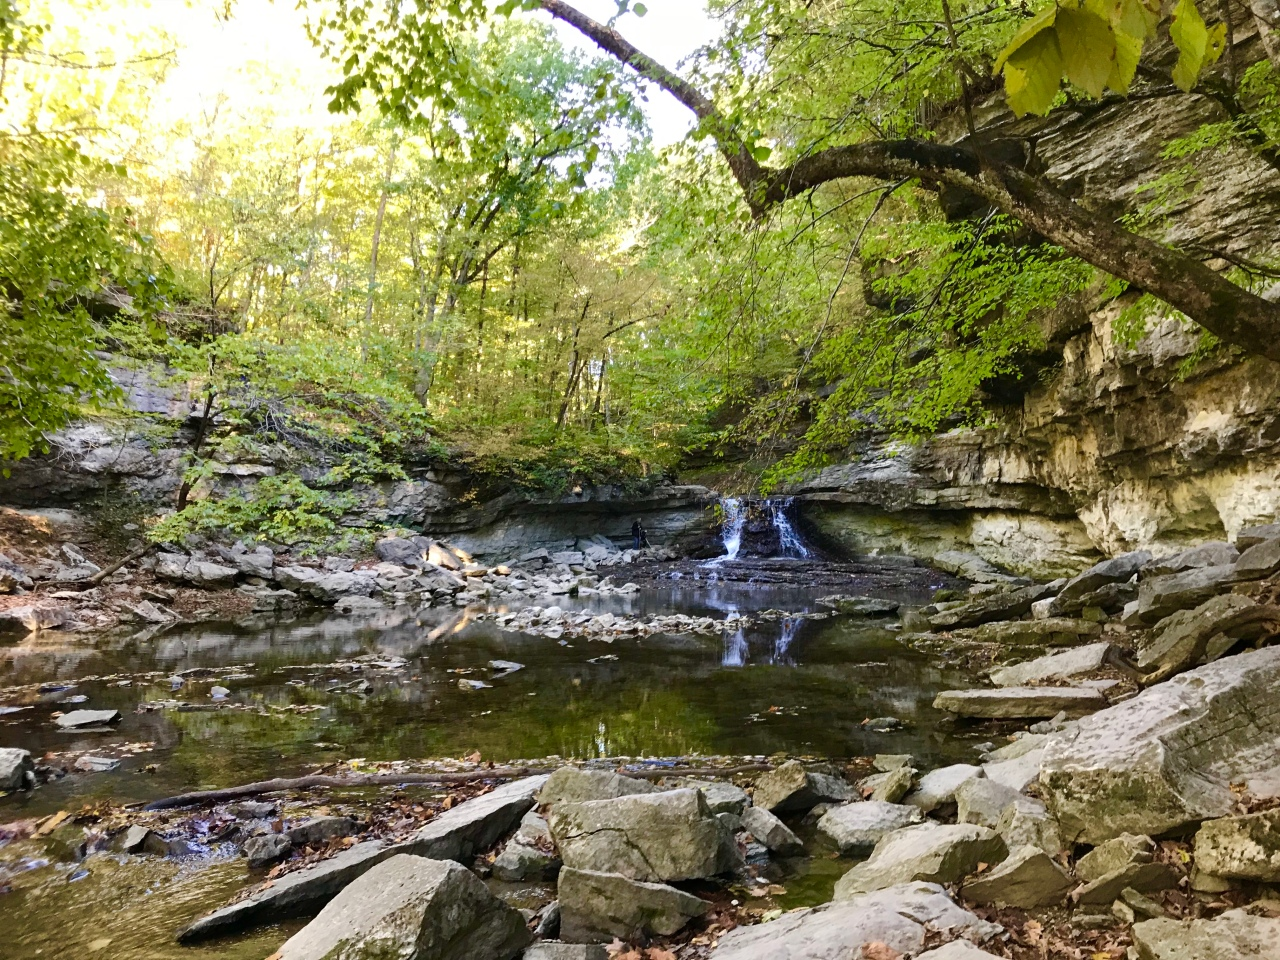 McCormick's Creek State Park – Indiana